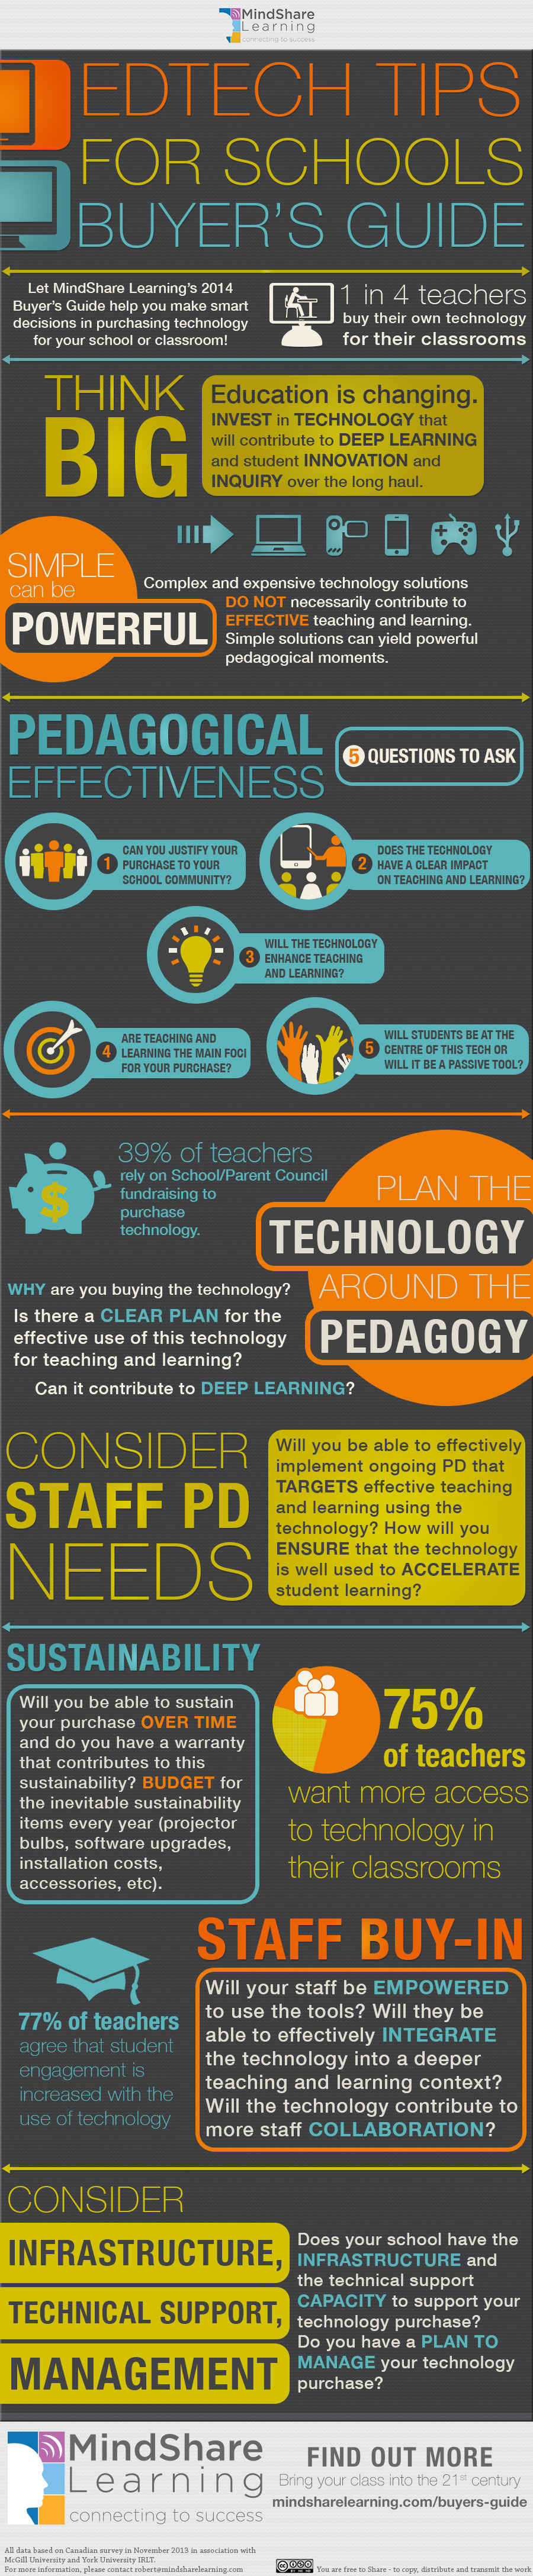 EdTech Tips for Schools Buyer's Guide